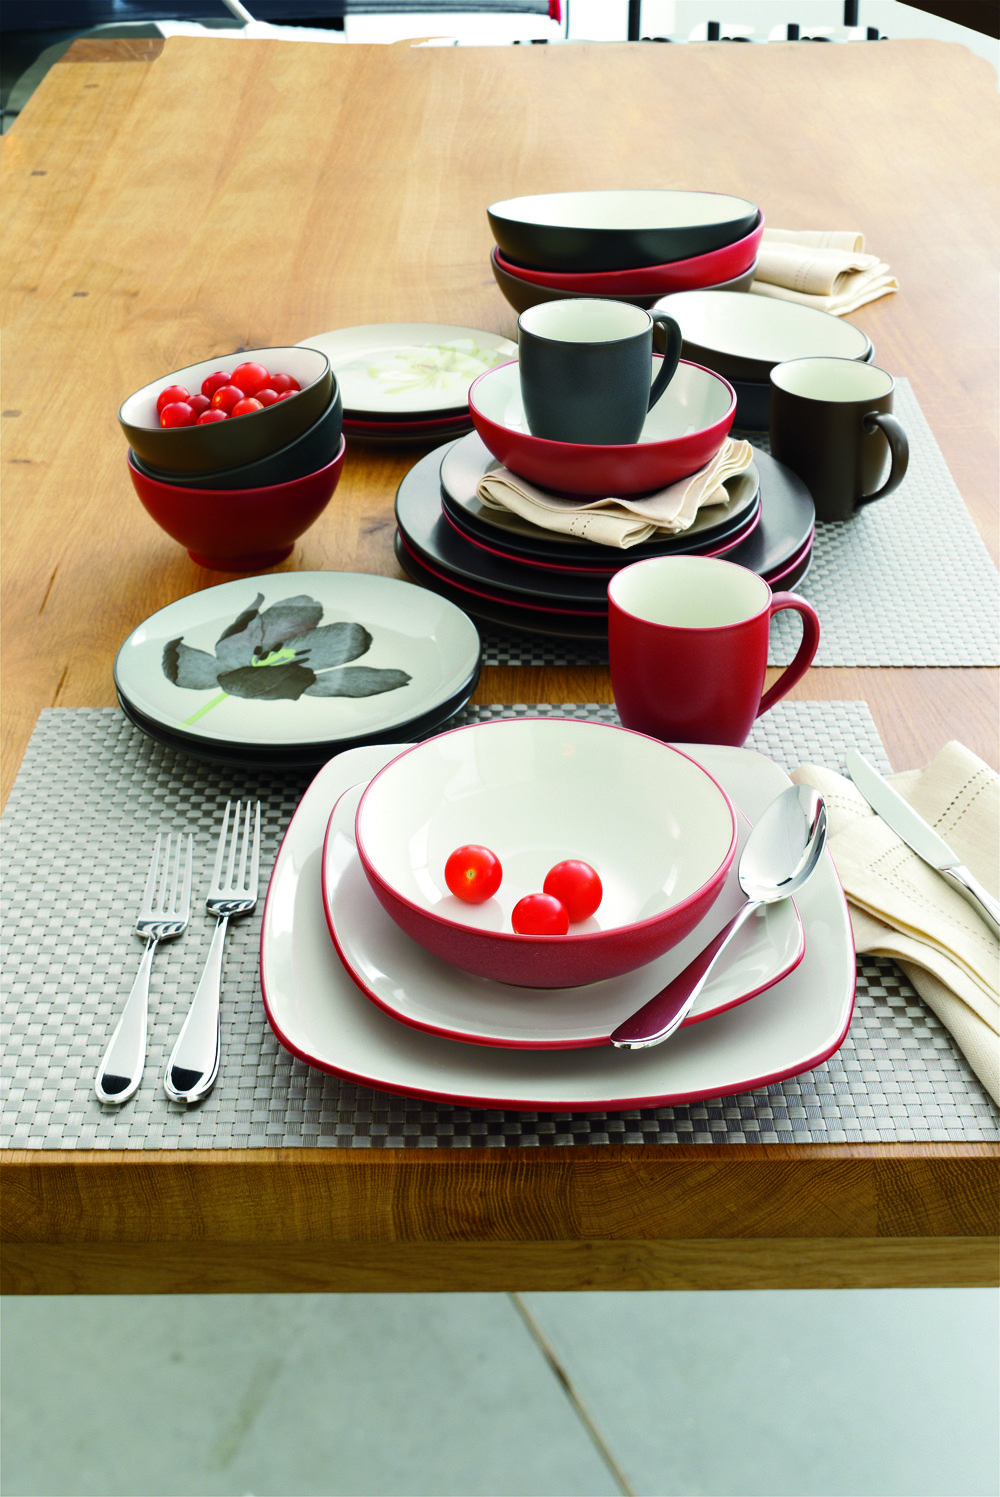 Dinnerware Serveware Kitchen Dining Kohl S Dinnerware Dining And Entertaining Dining